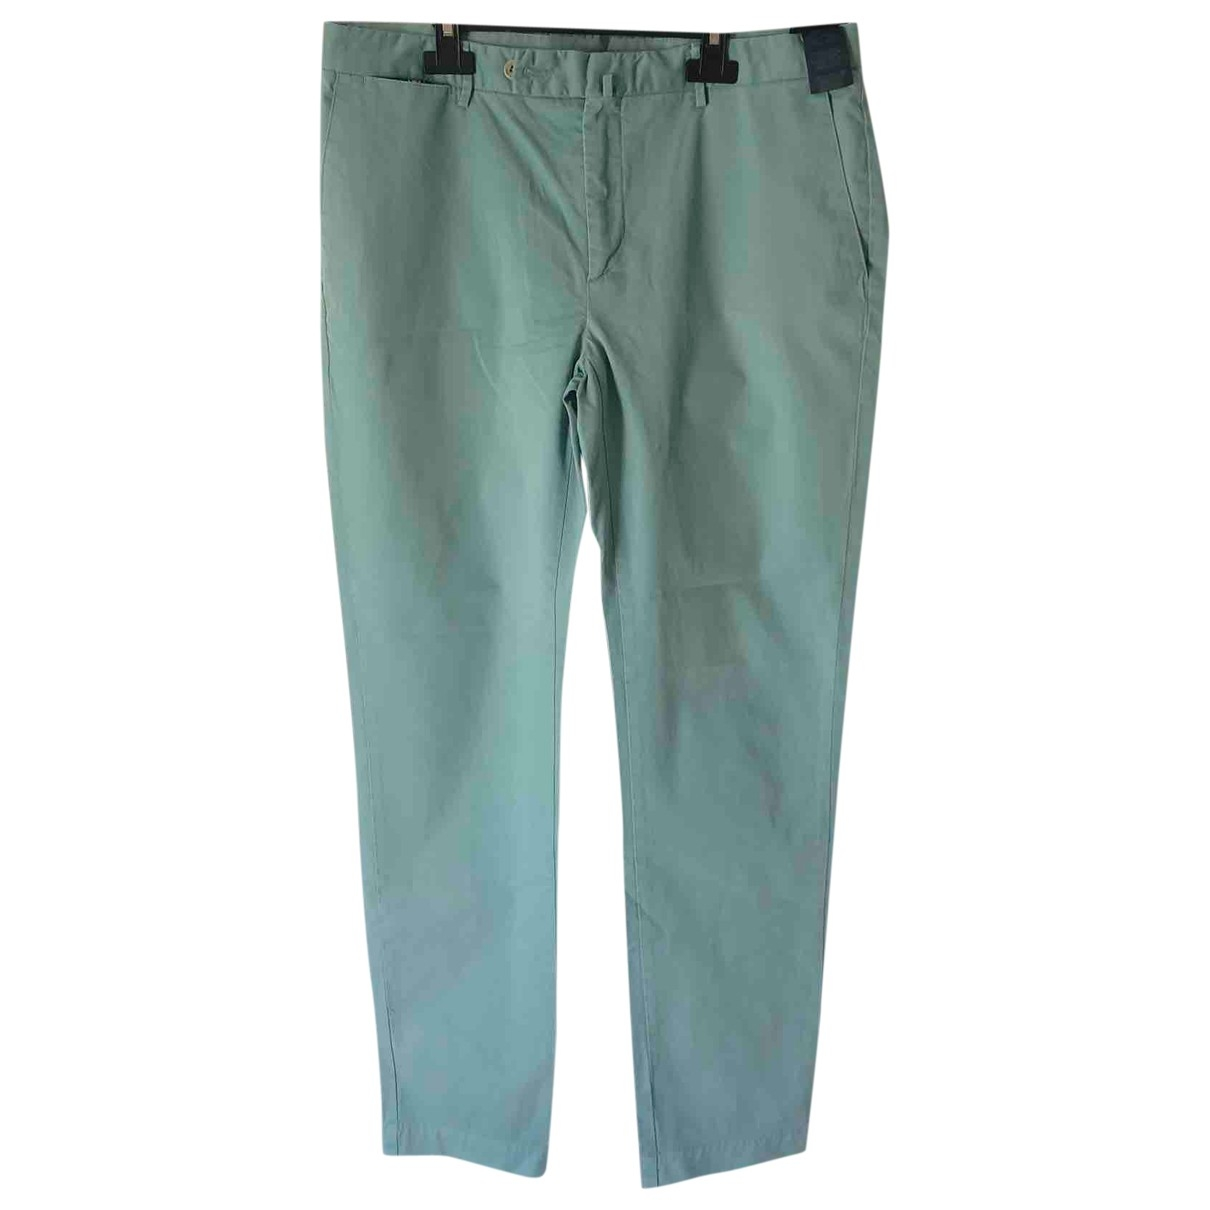 Hackett London \N Turquoise Cotton Trousers for Men 34 UK - US